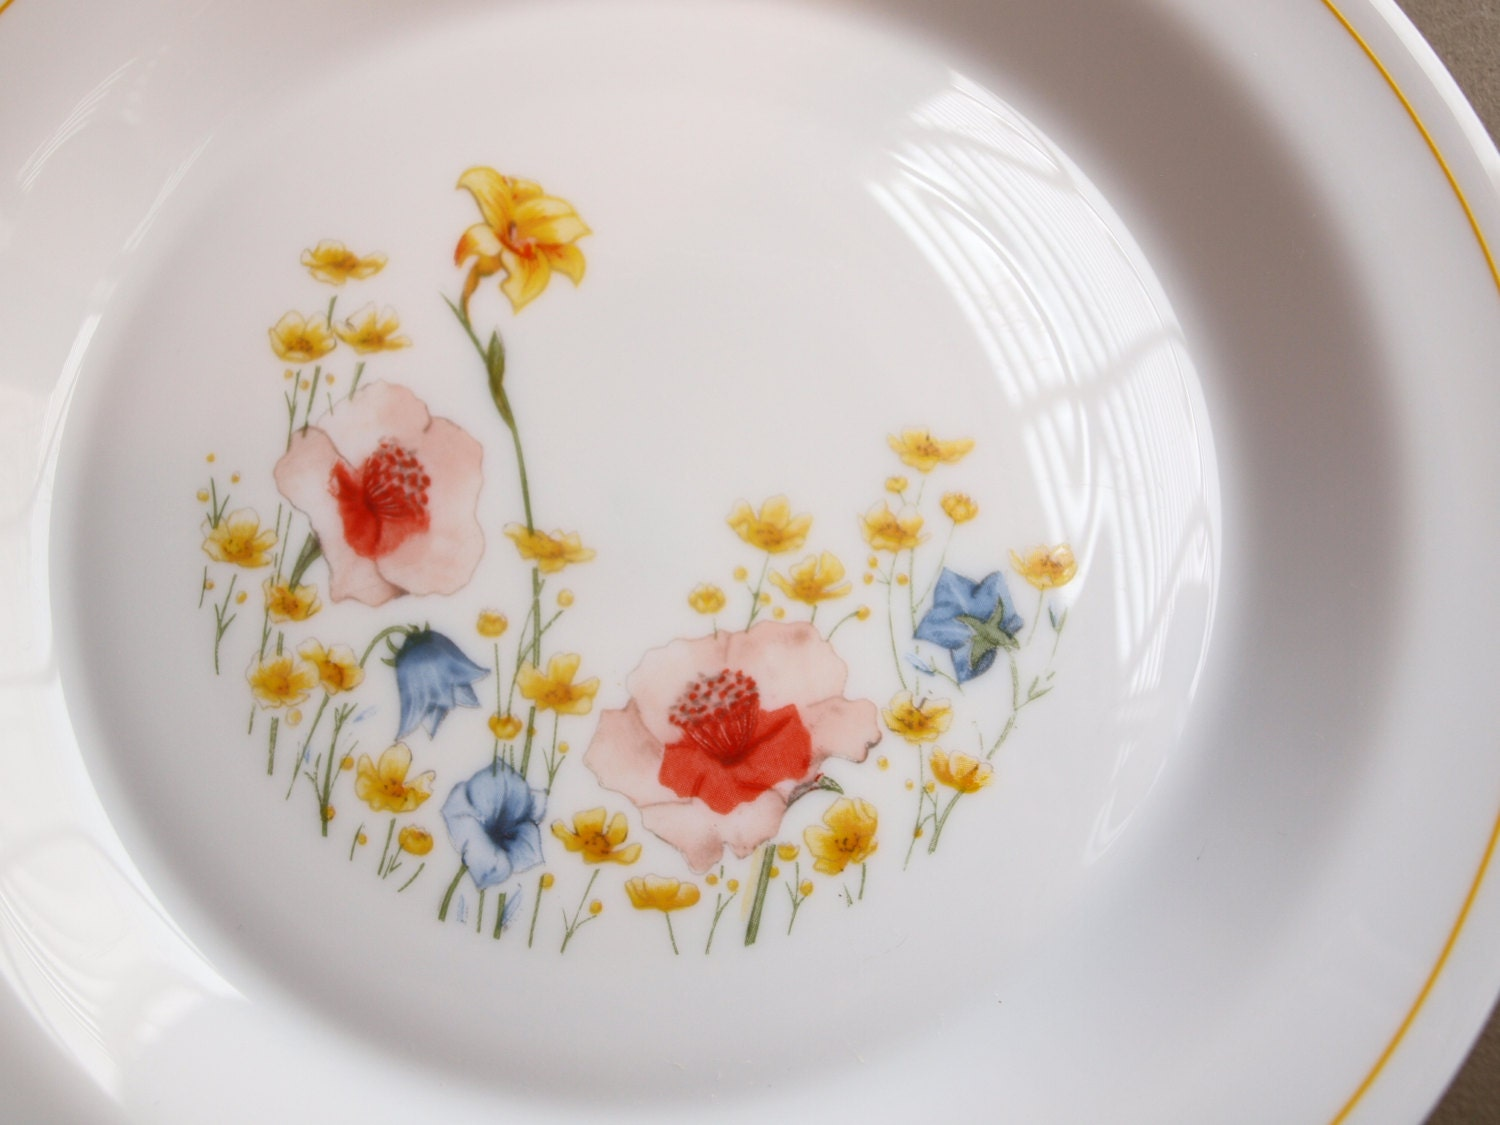 About Arcopal France Dinnerware Patterns - Patterns Kid